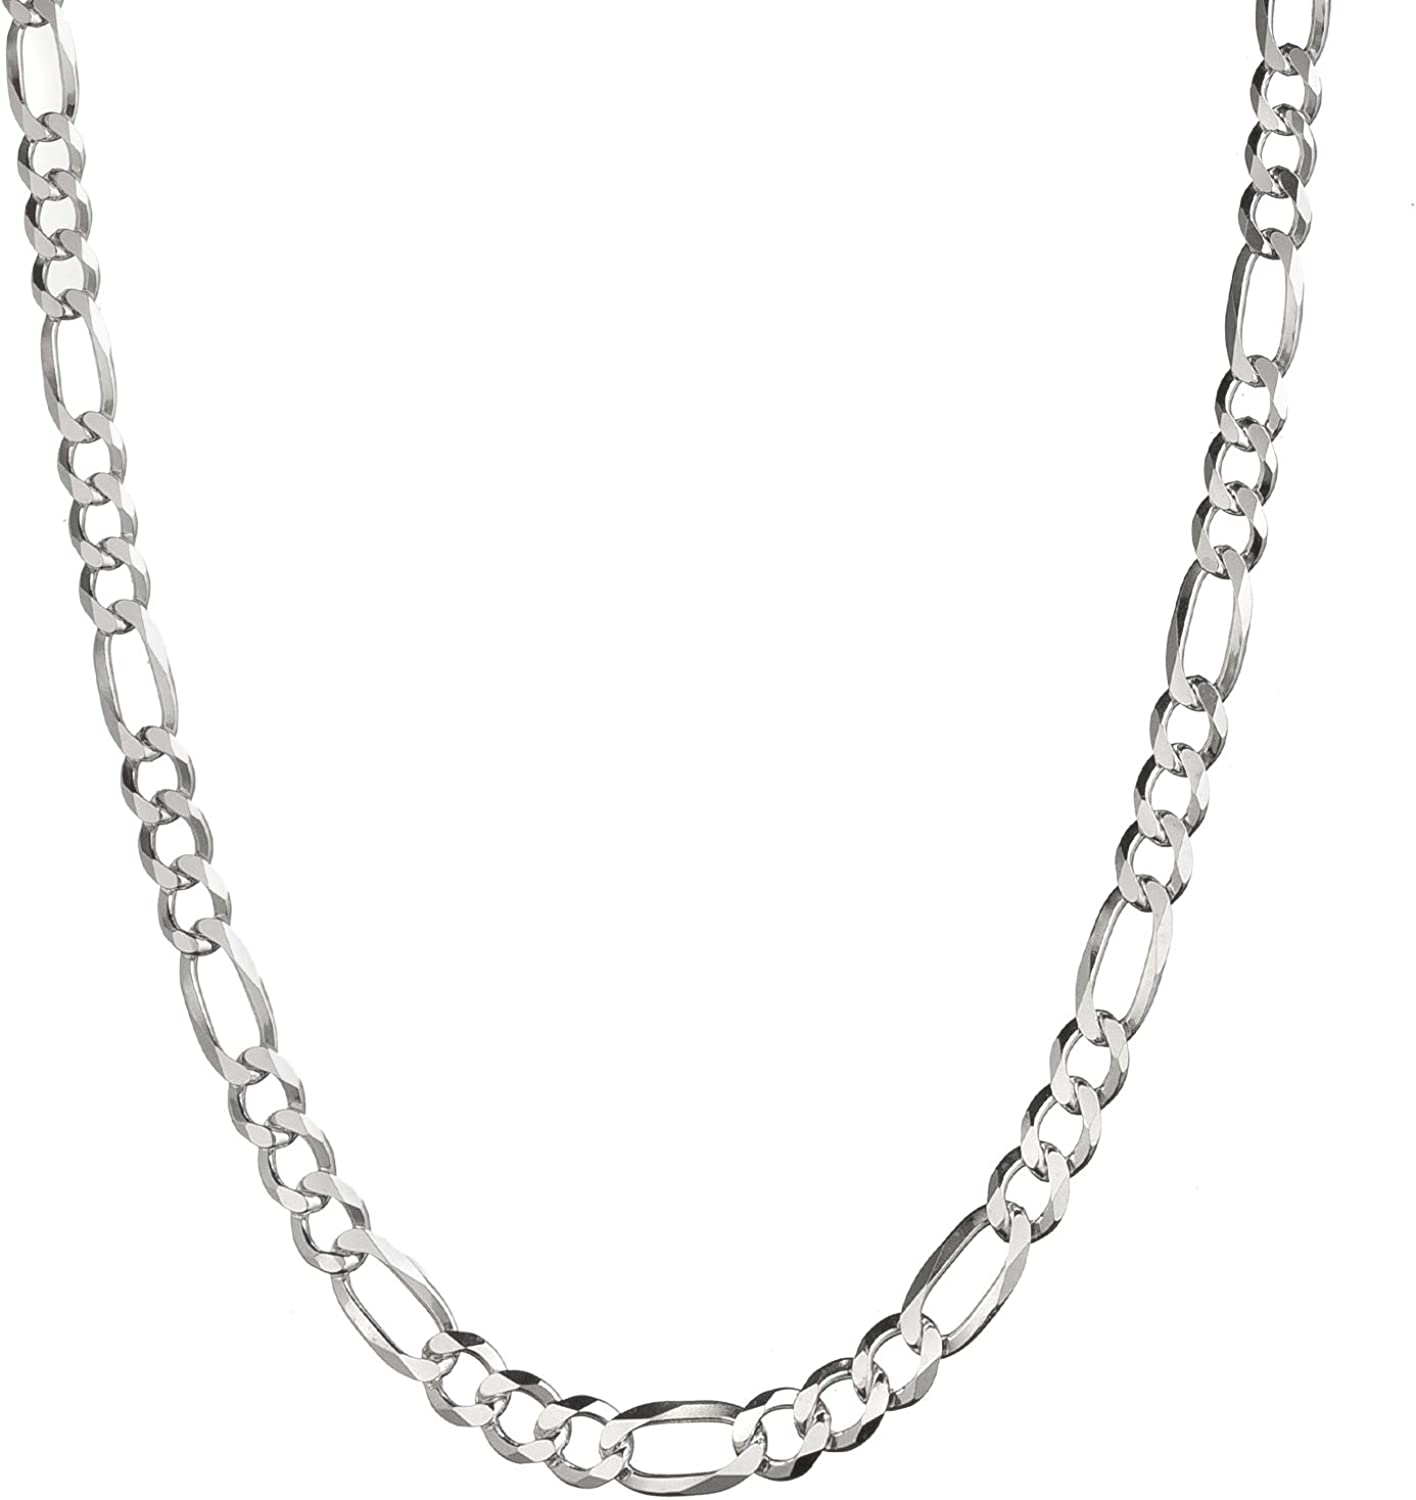 necklace for interchangeable chain pendant Silver chain figaro 925 silver sterling silver filigree chain silver bracelet basic chain